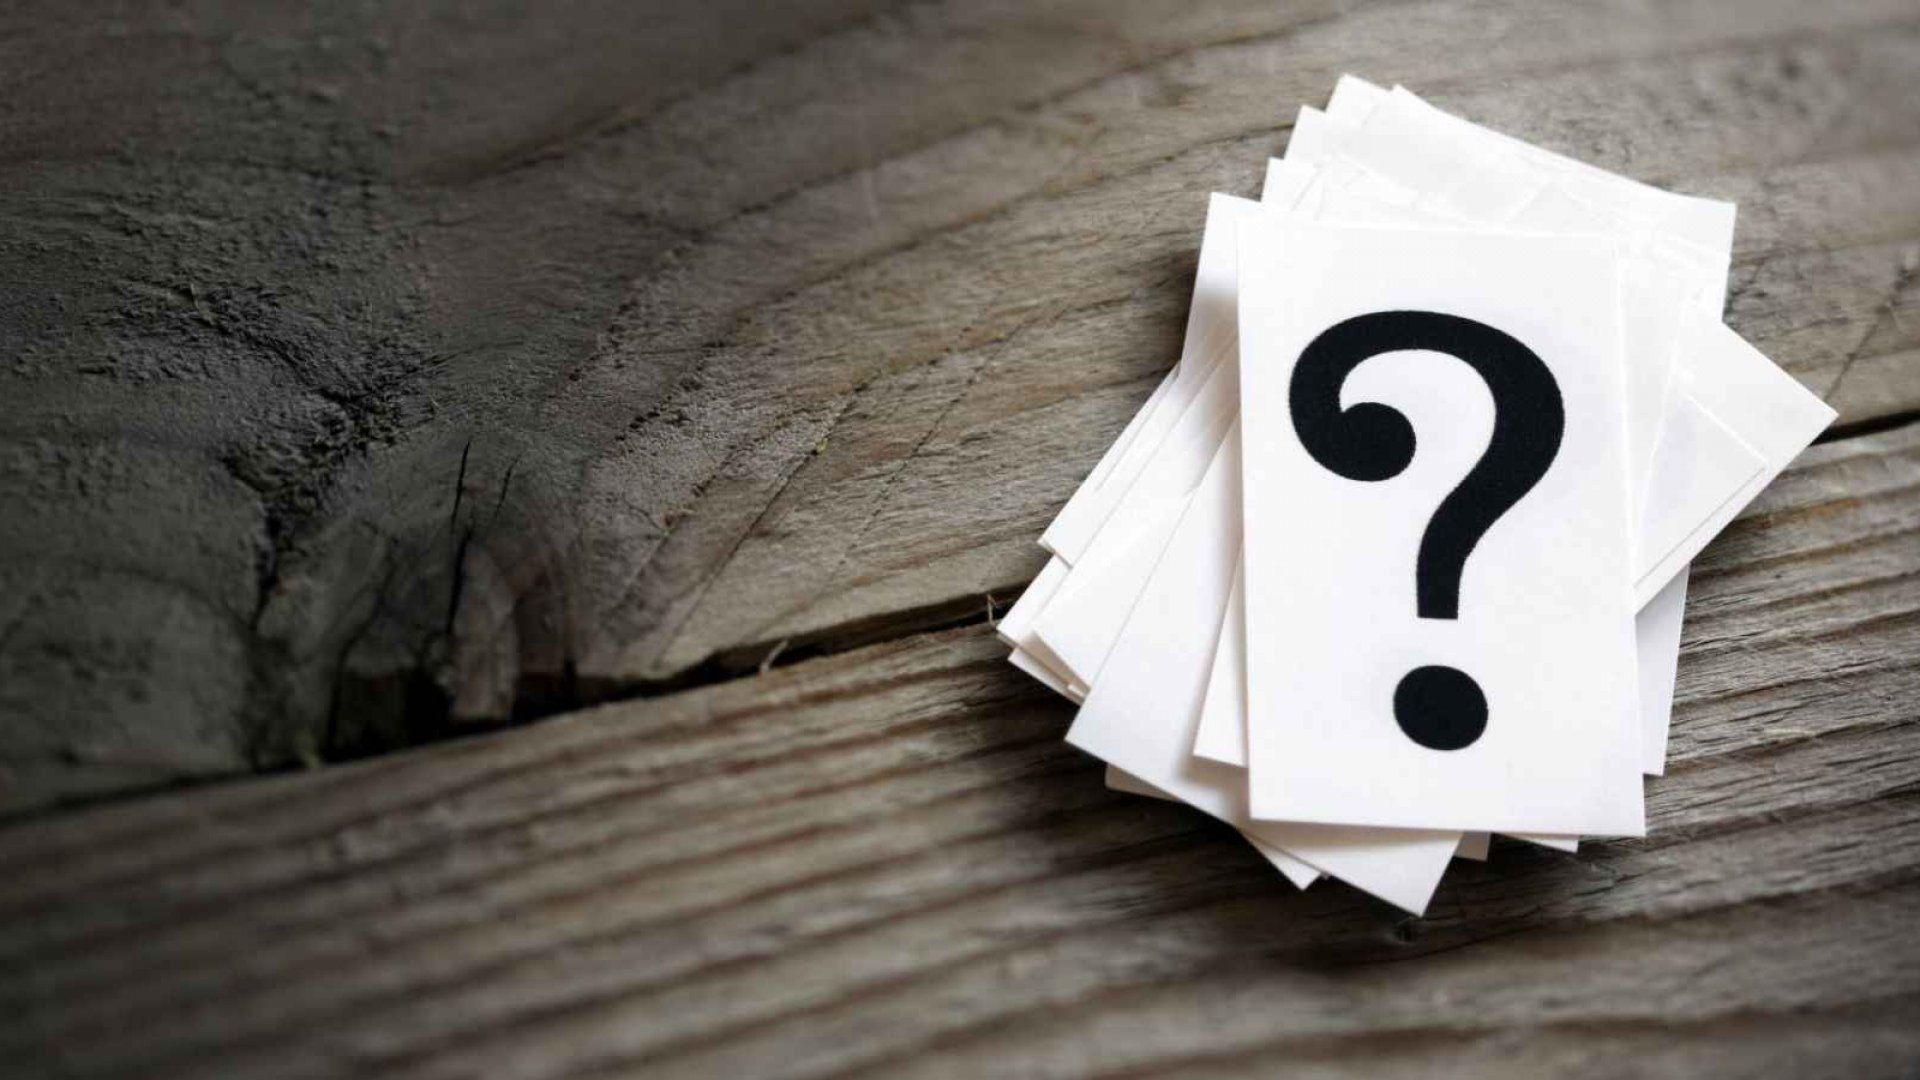 Here Are 3 Questions to Ask Yourself When Things Get Tough